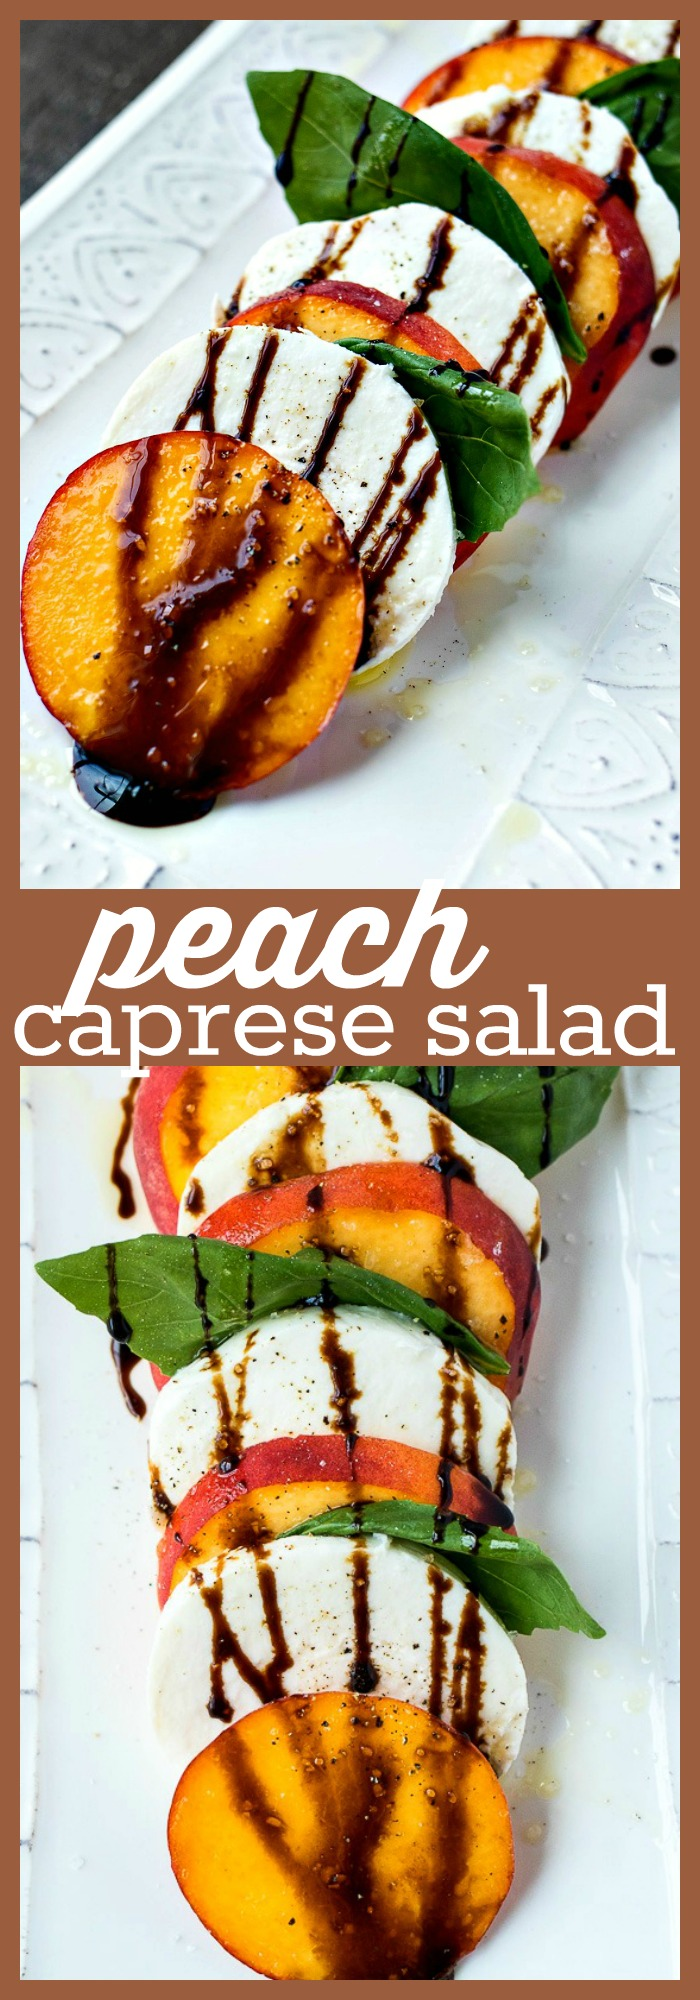 Peach Caprese Salad photo collage